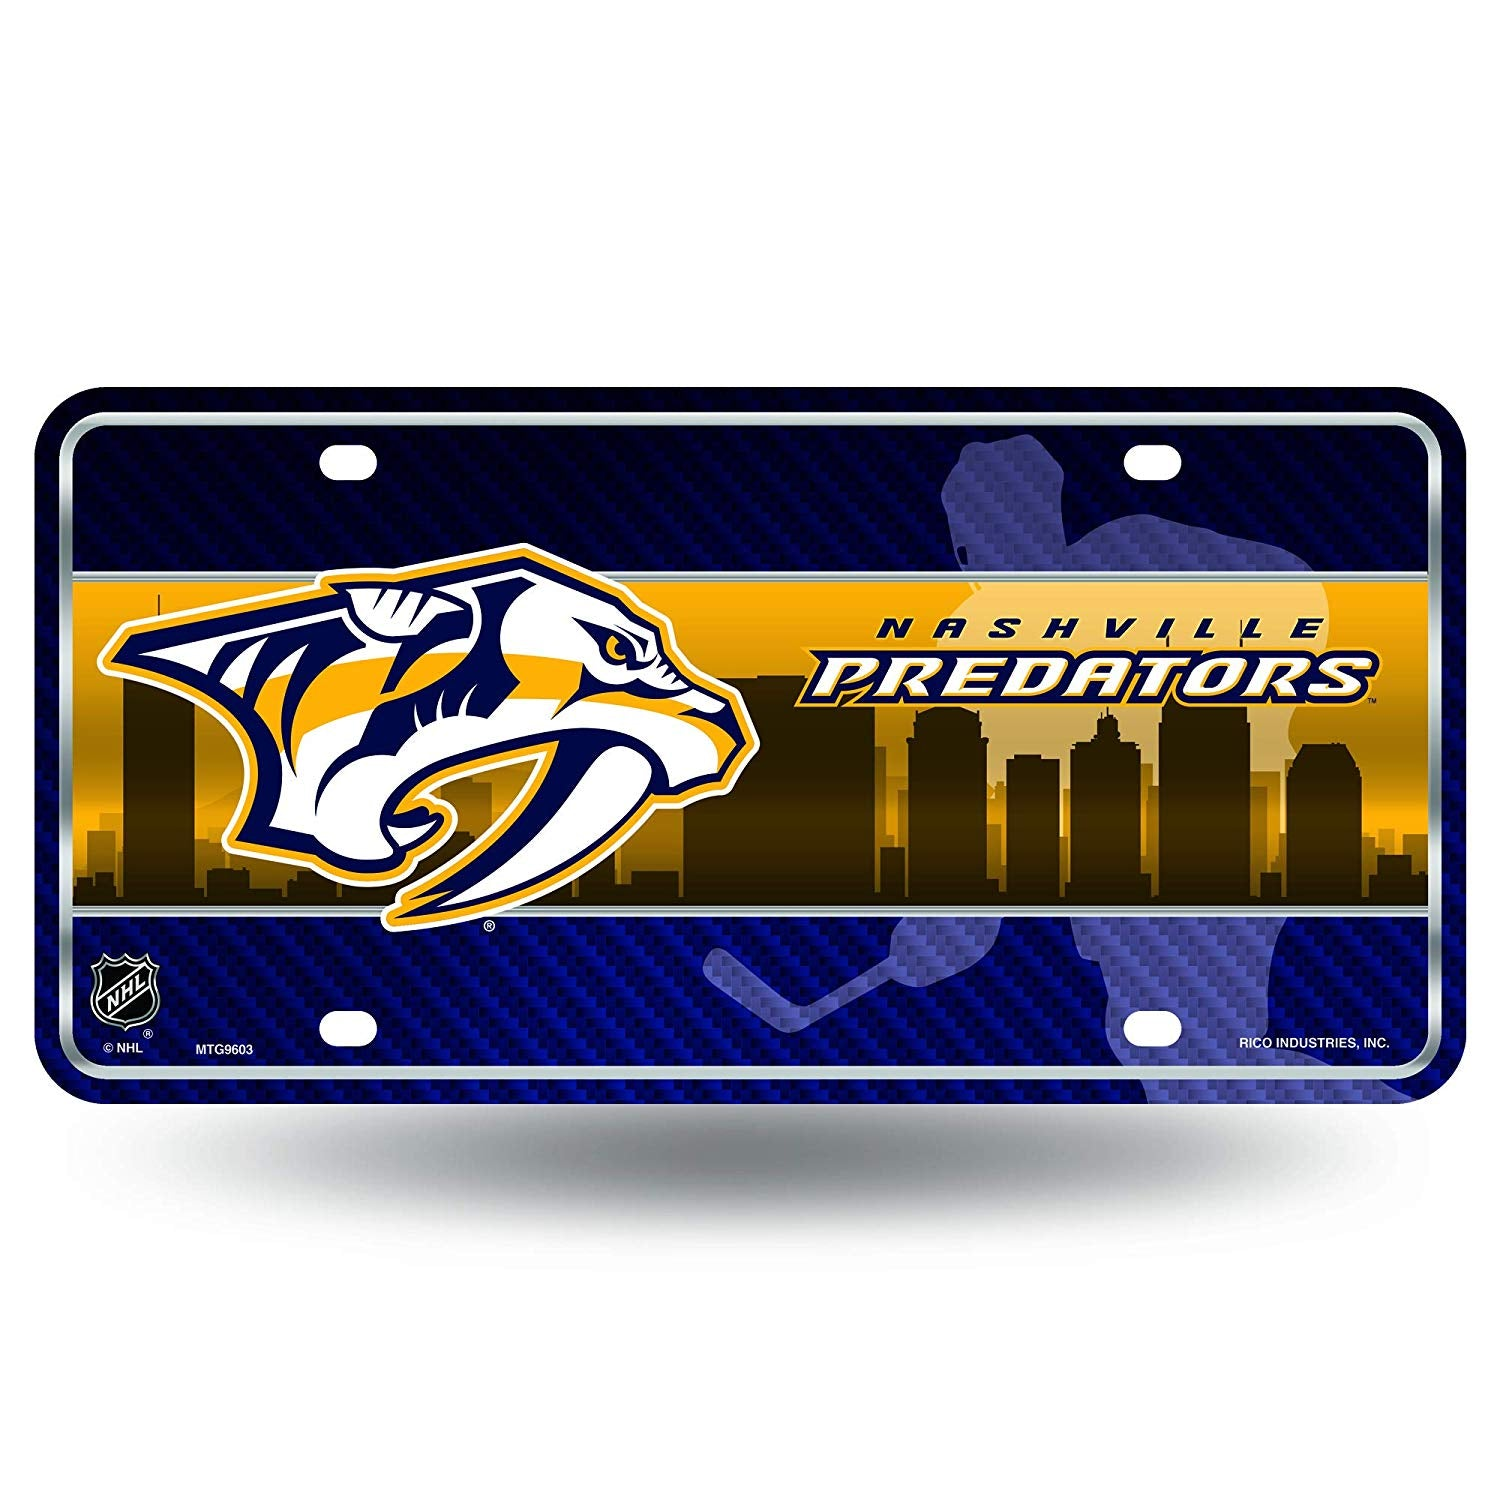 NHL Nashville Predators Metal License Plate Tag